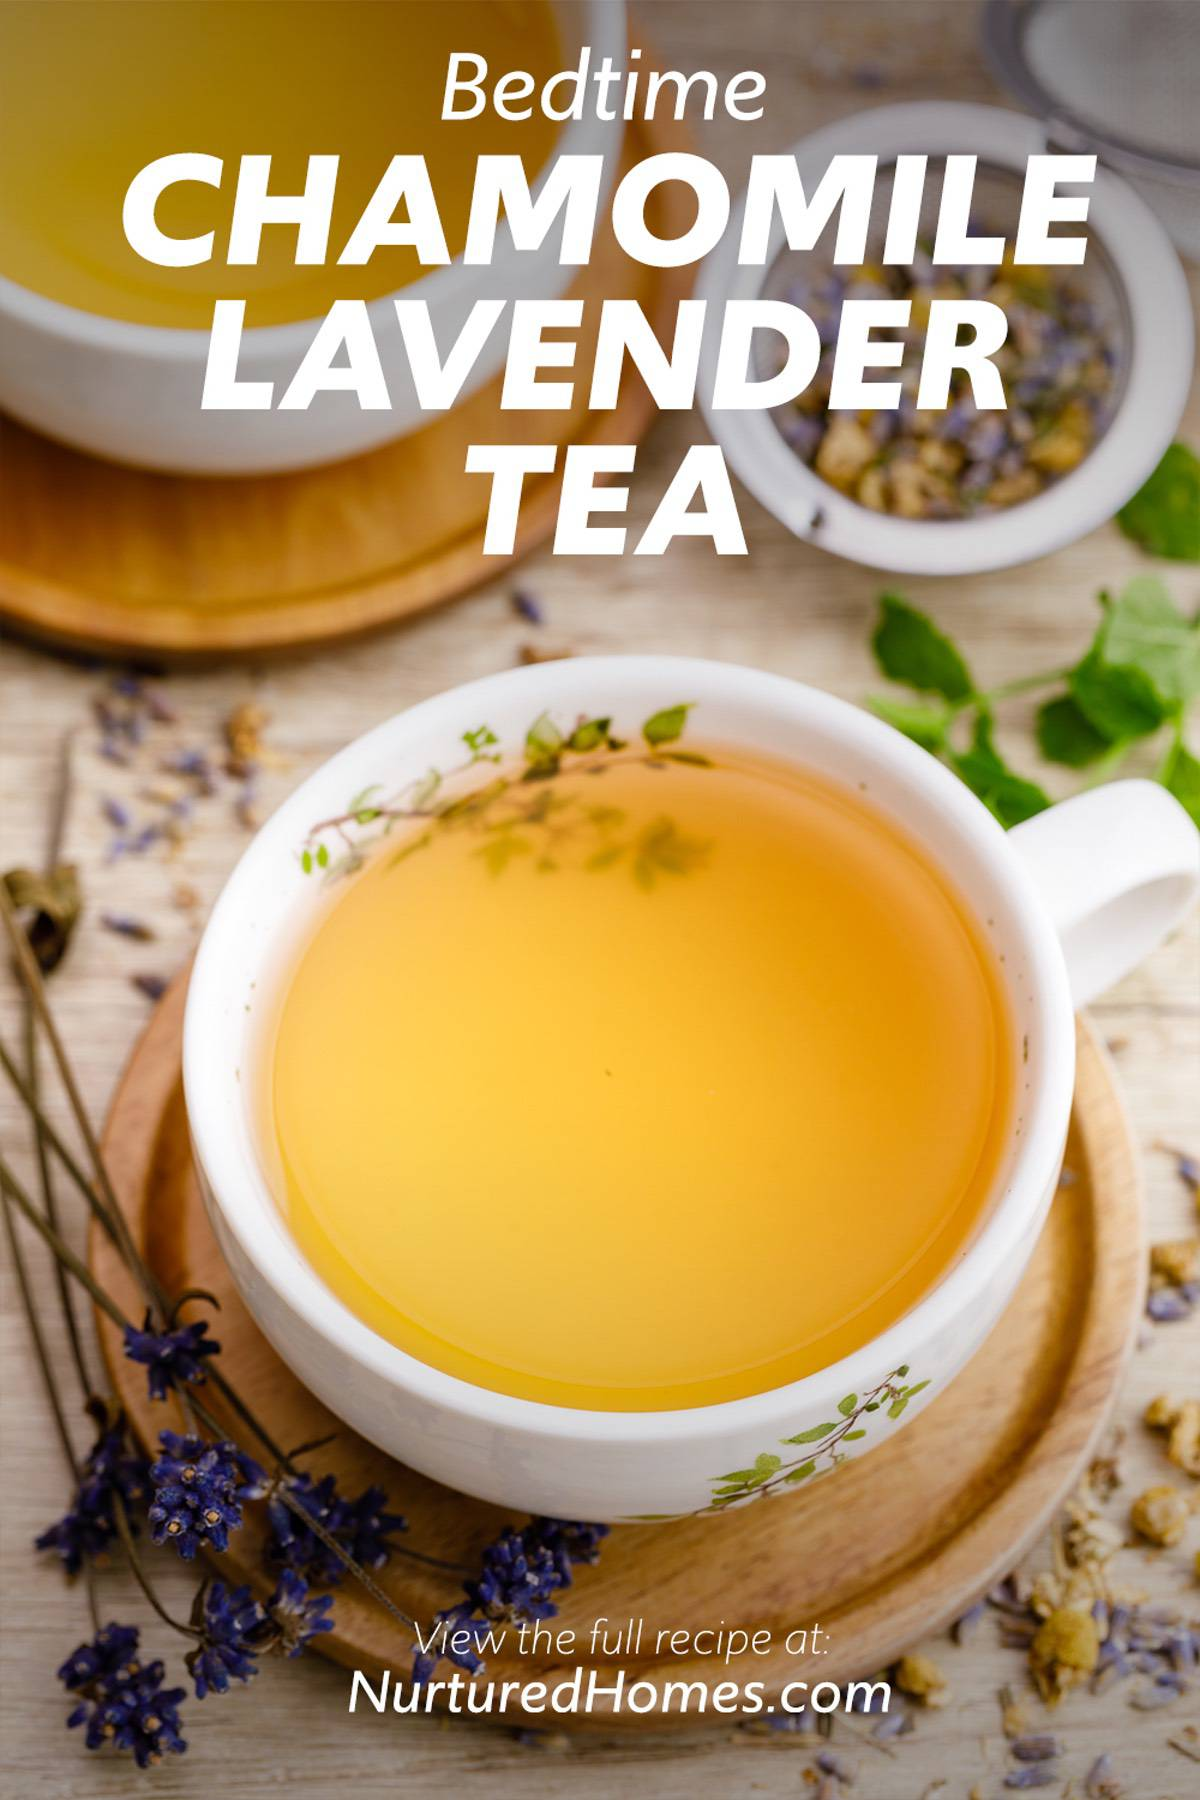 How to Make the Best Bedtime Chamomile Lavender Tea